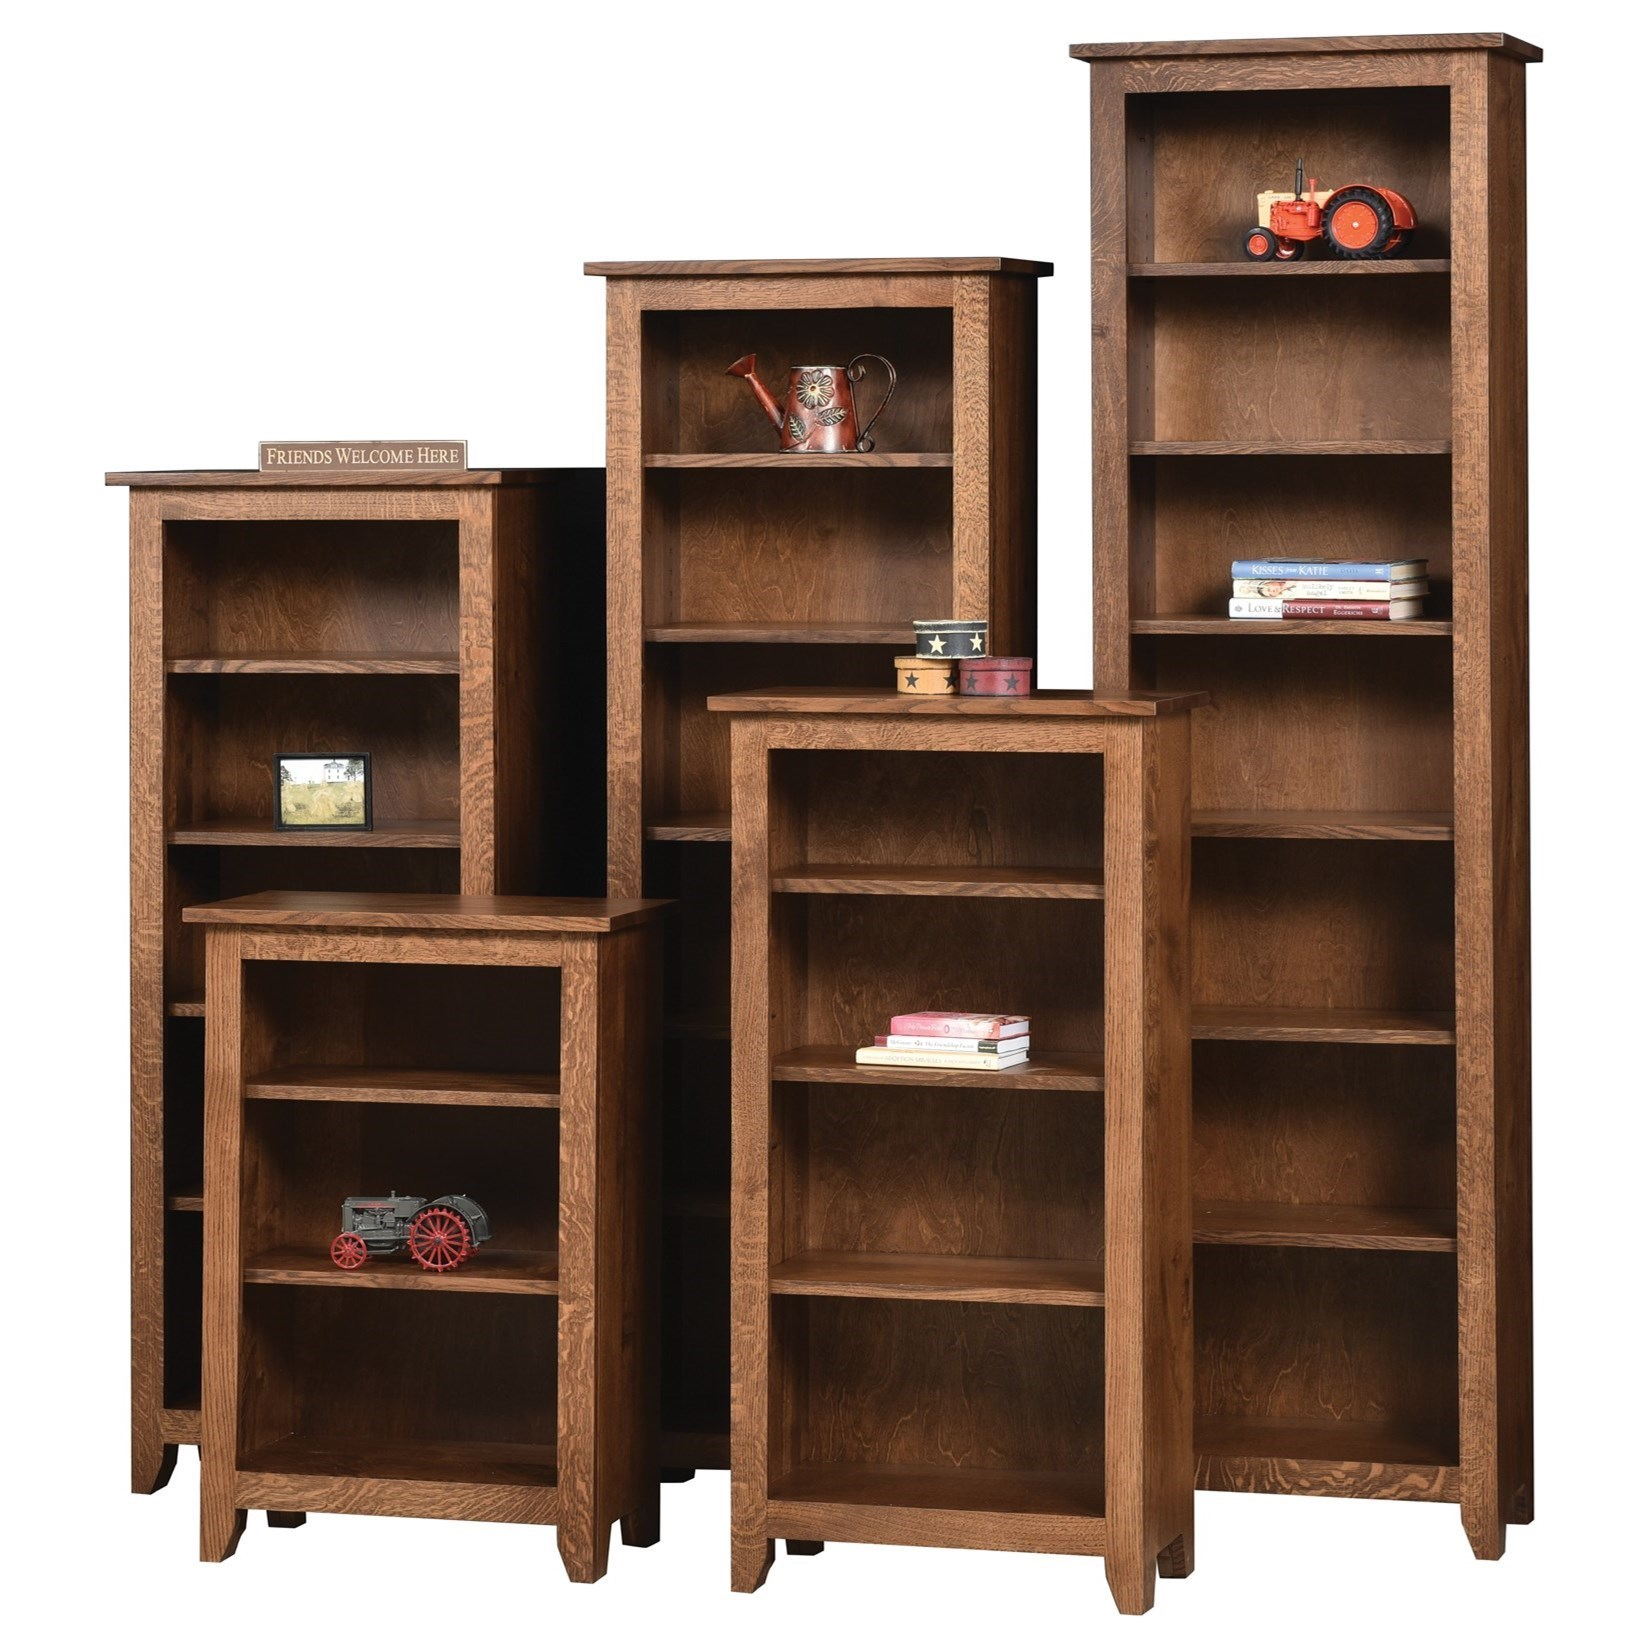 Ashery Oak Modern Mission Customizable Solid Wood Open